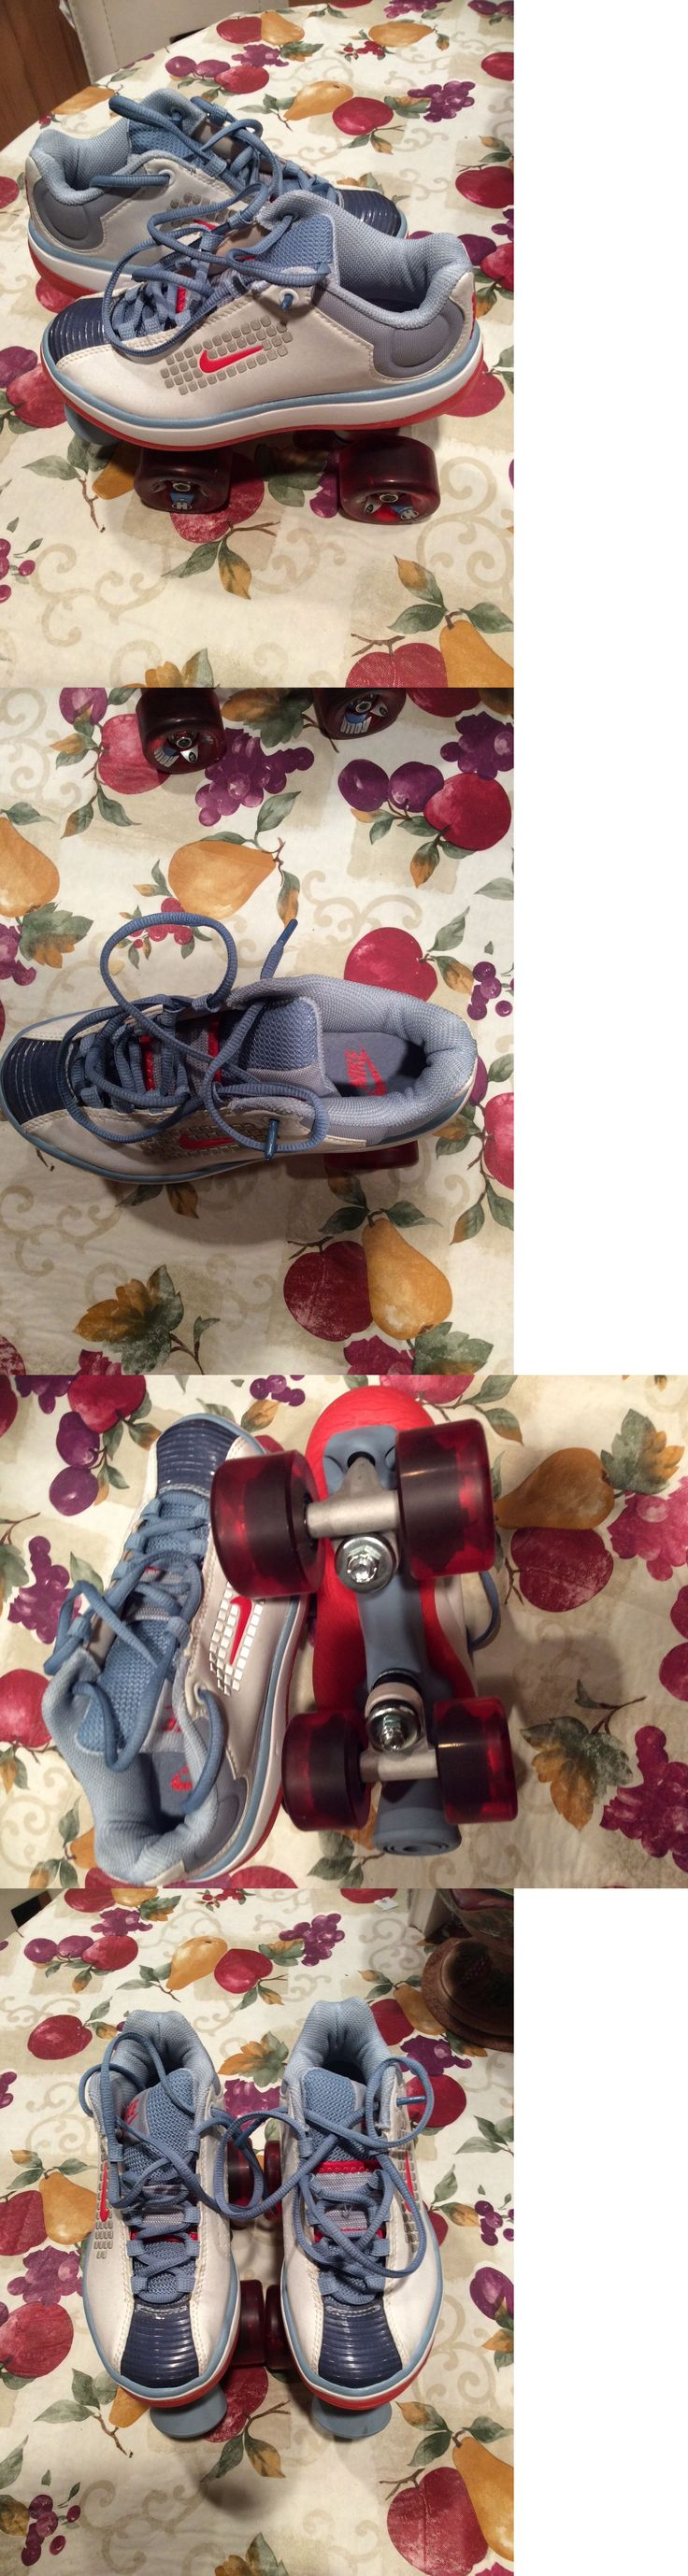 Women 16261: Womens Nike Beachcomber Roller Skates Derby Rollo Wheels Size 5 Reflective BUY IT NOW ONLY: $55.0